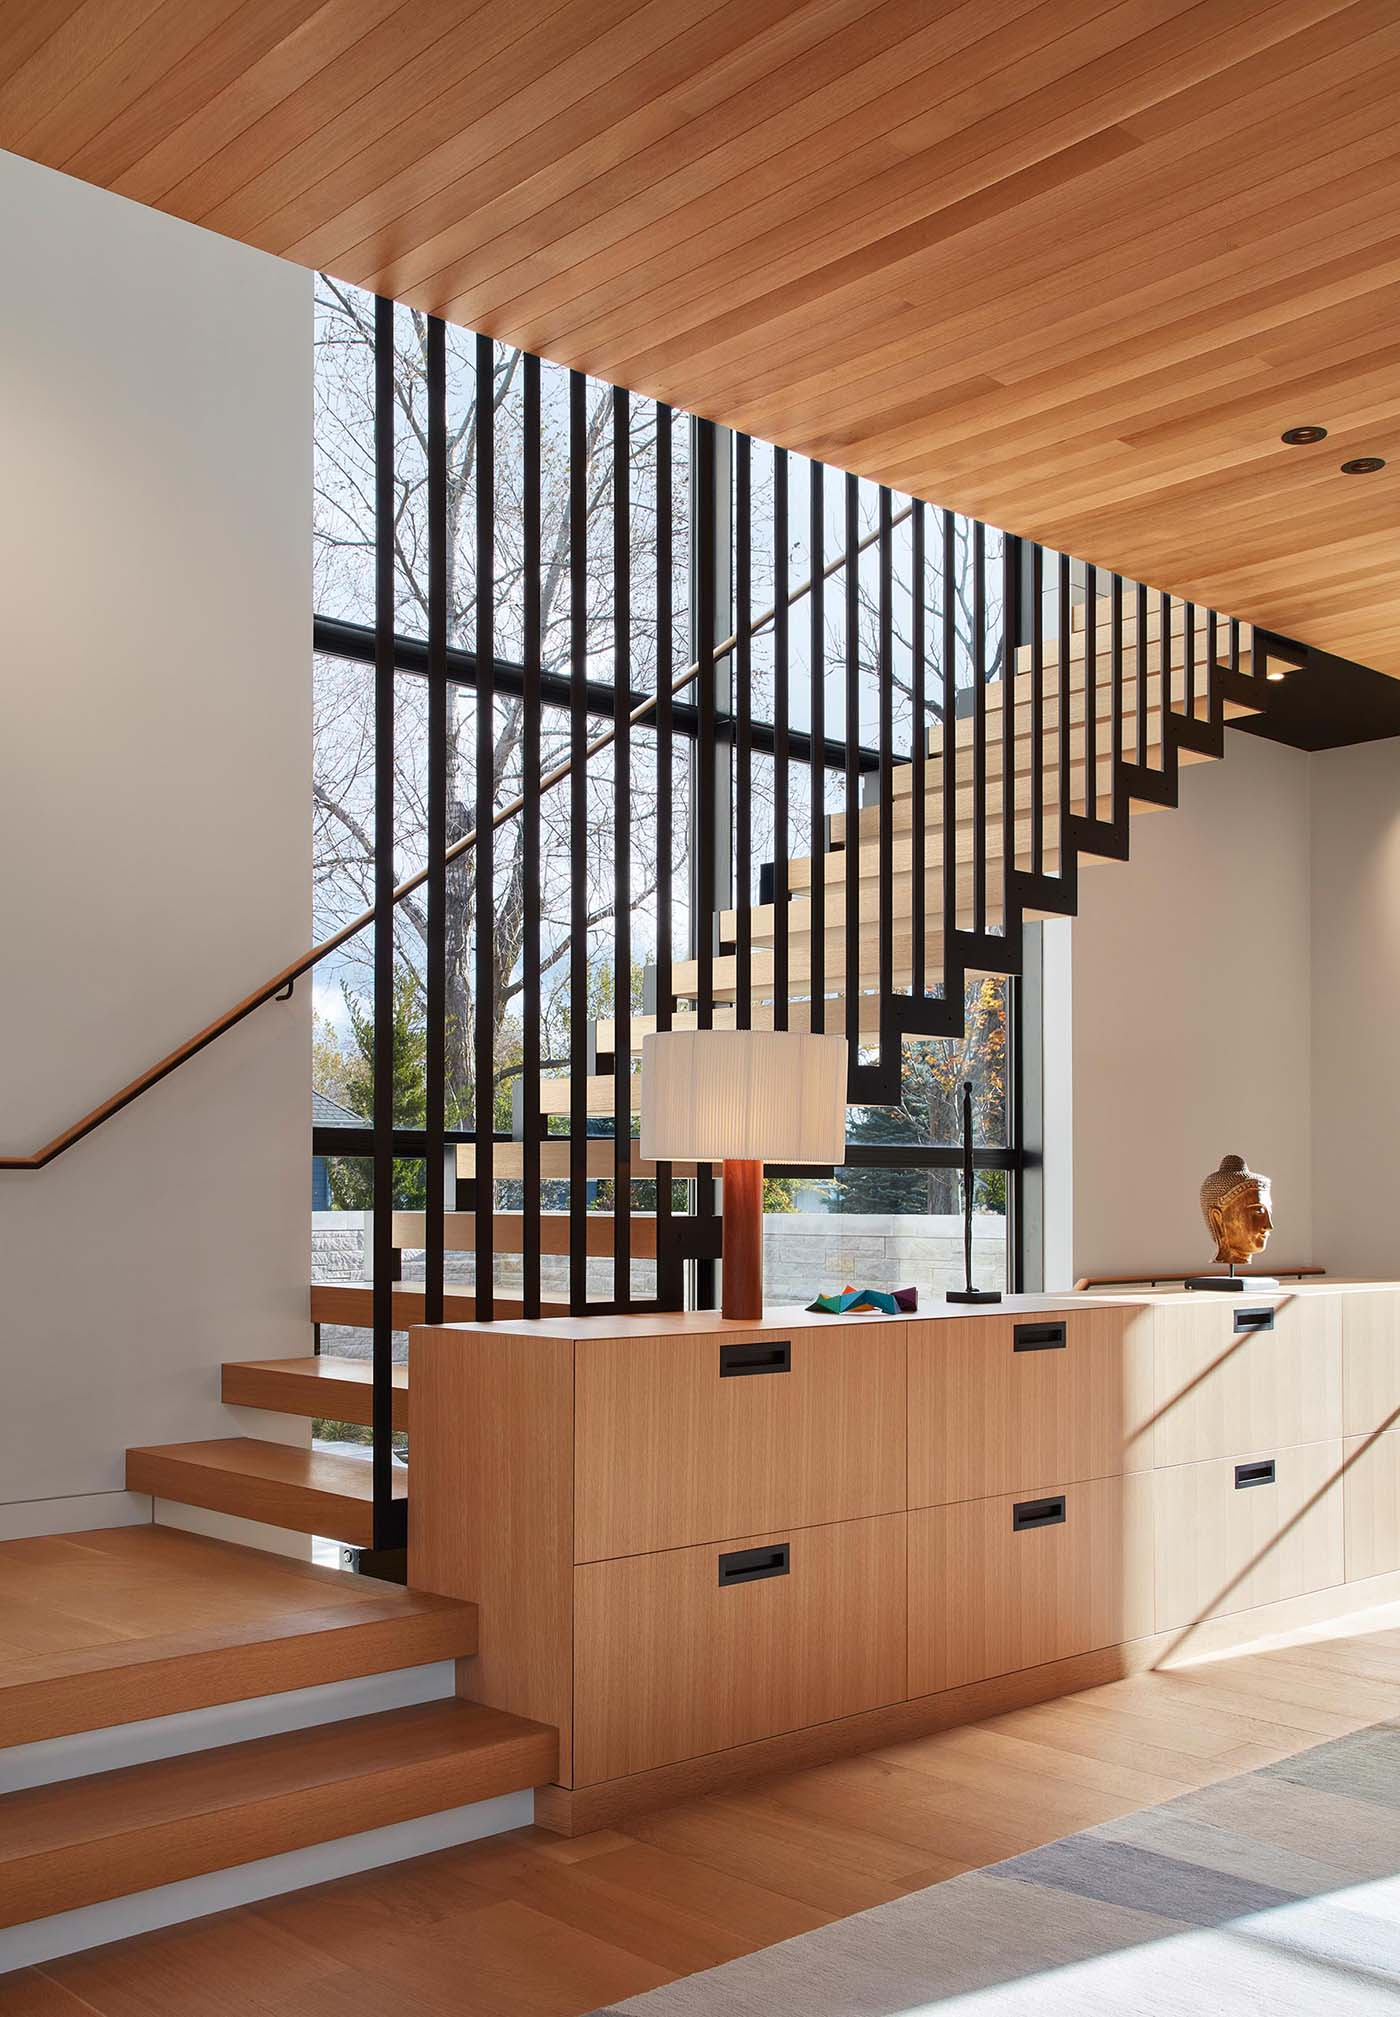 A suspended steel staircase with white oak treads connects the different levels of the home, while built-in cabinetry adds an element of storage.